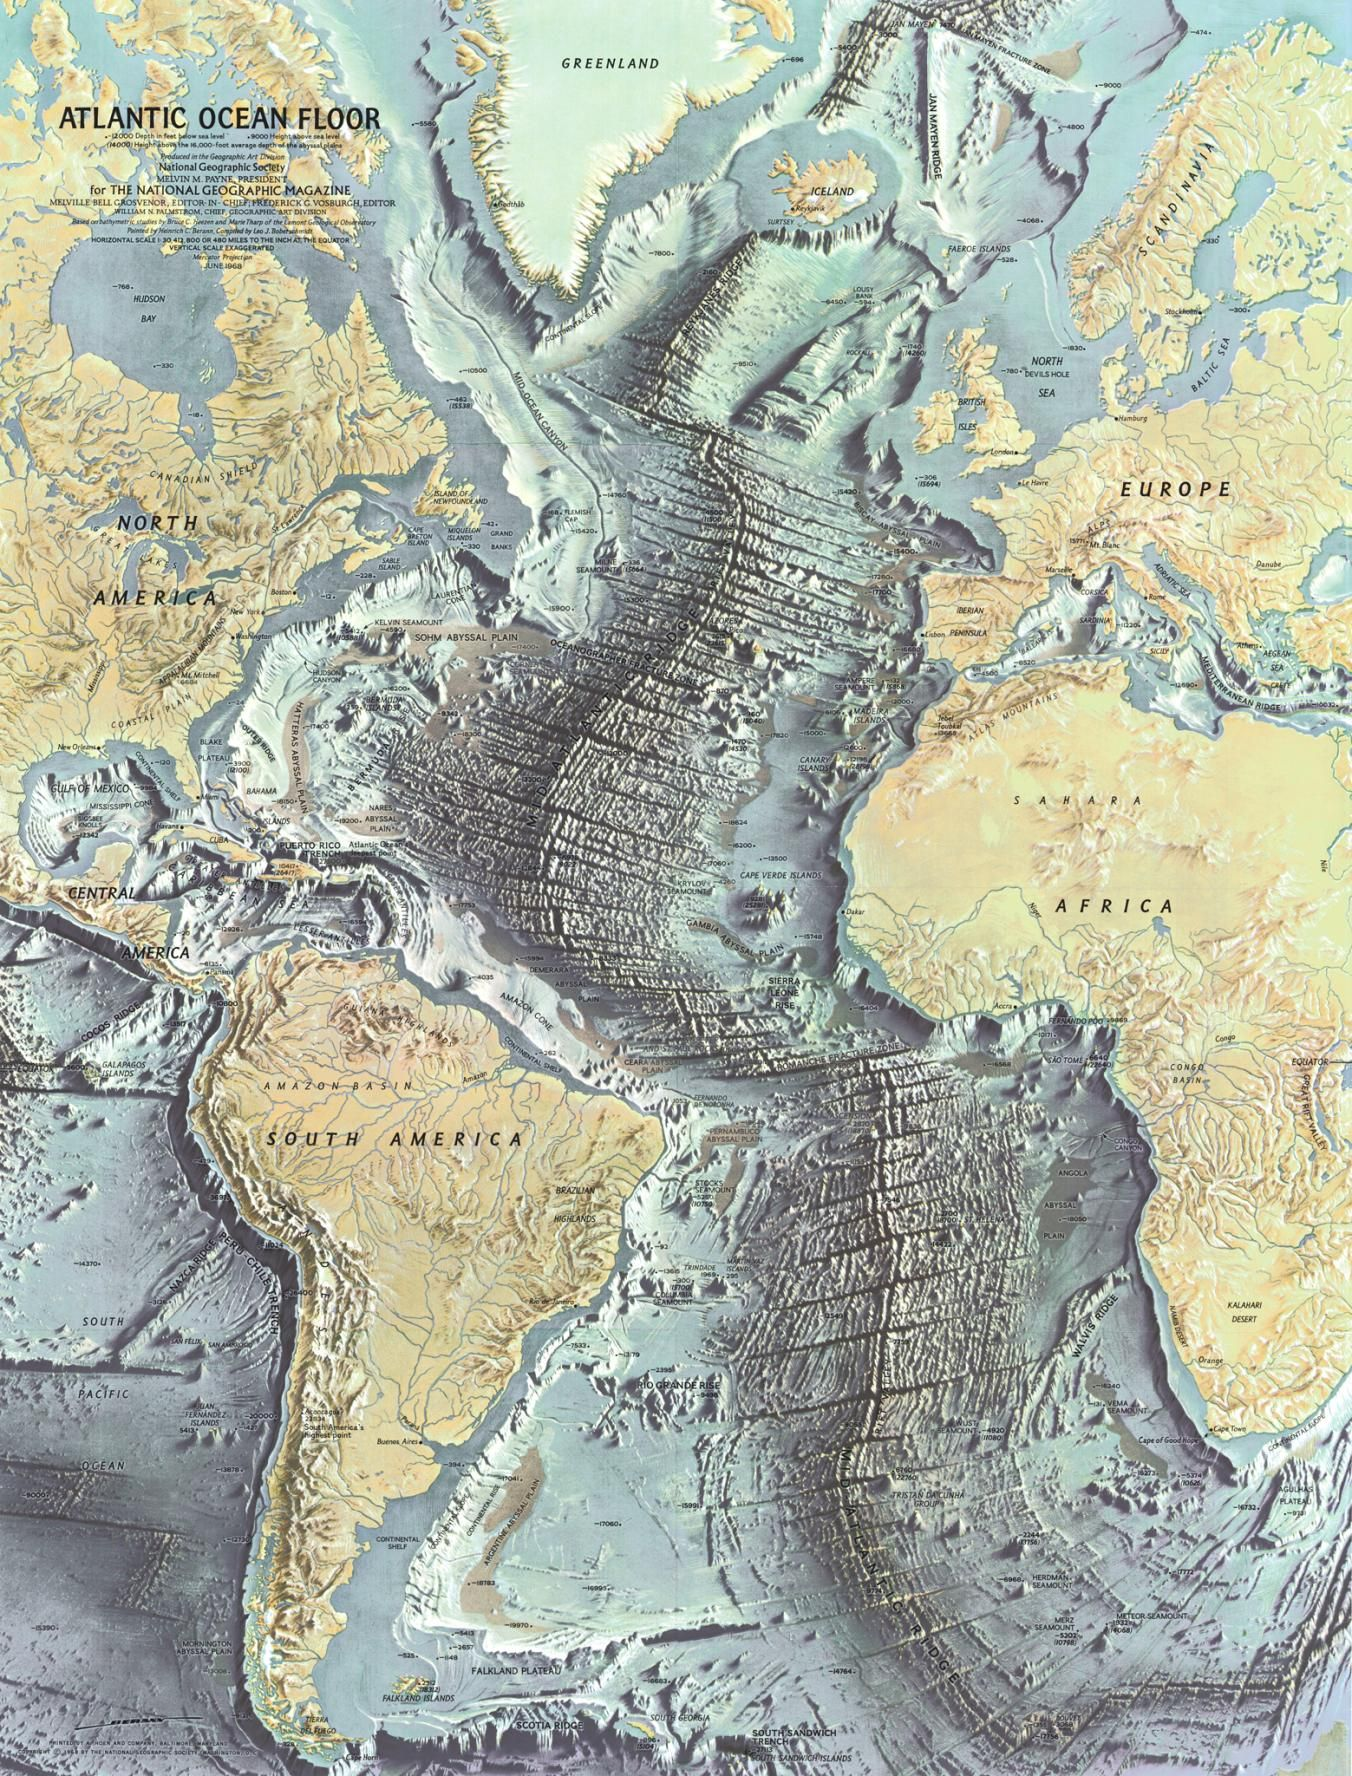 100 Years of National Geographic Maps: The Art and Science.